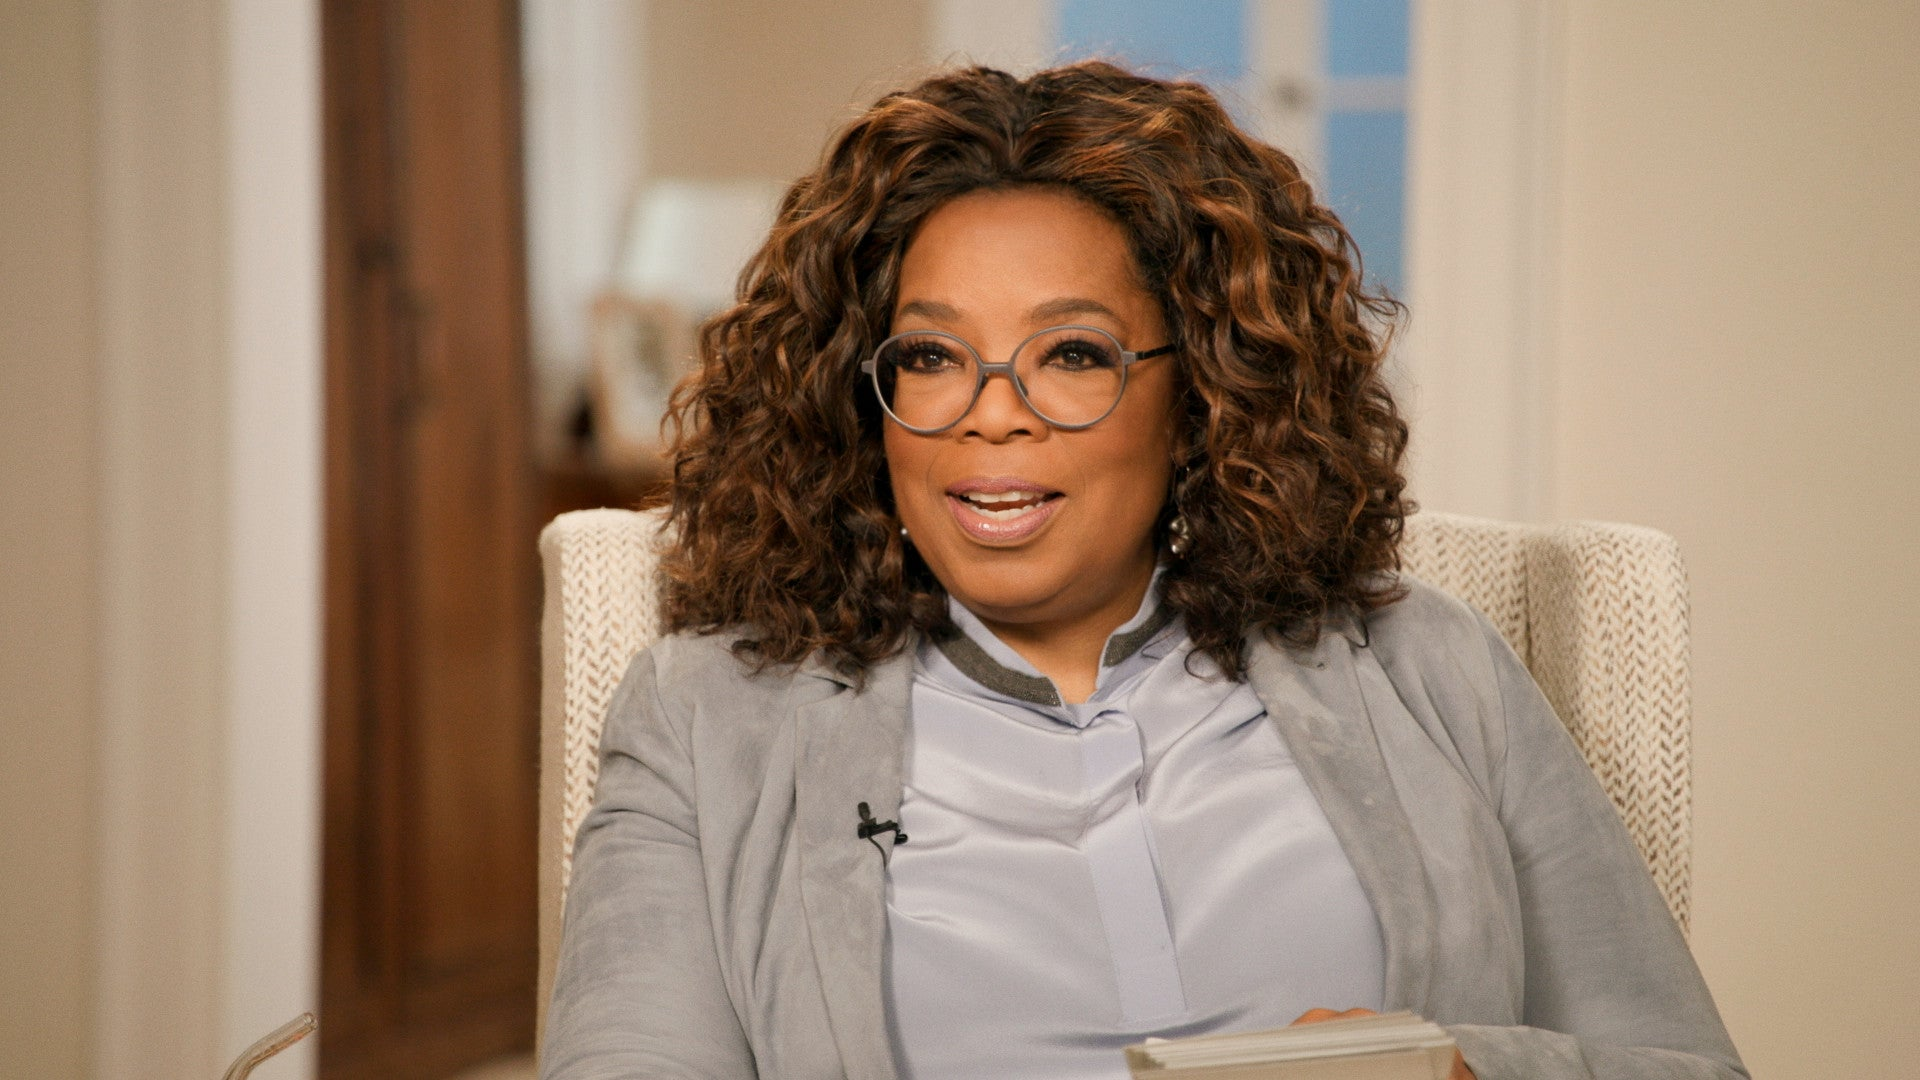 Oprah during Barack Obama interview